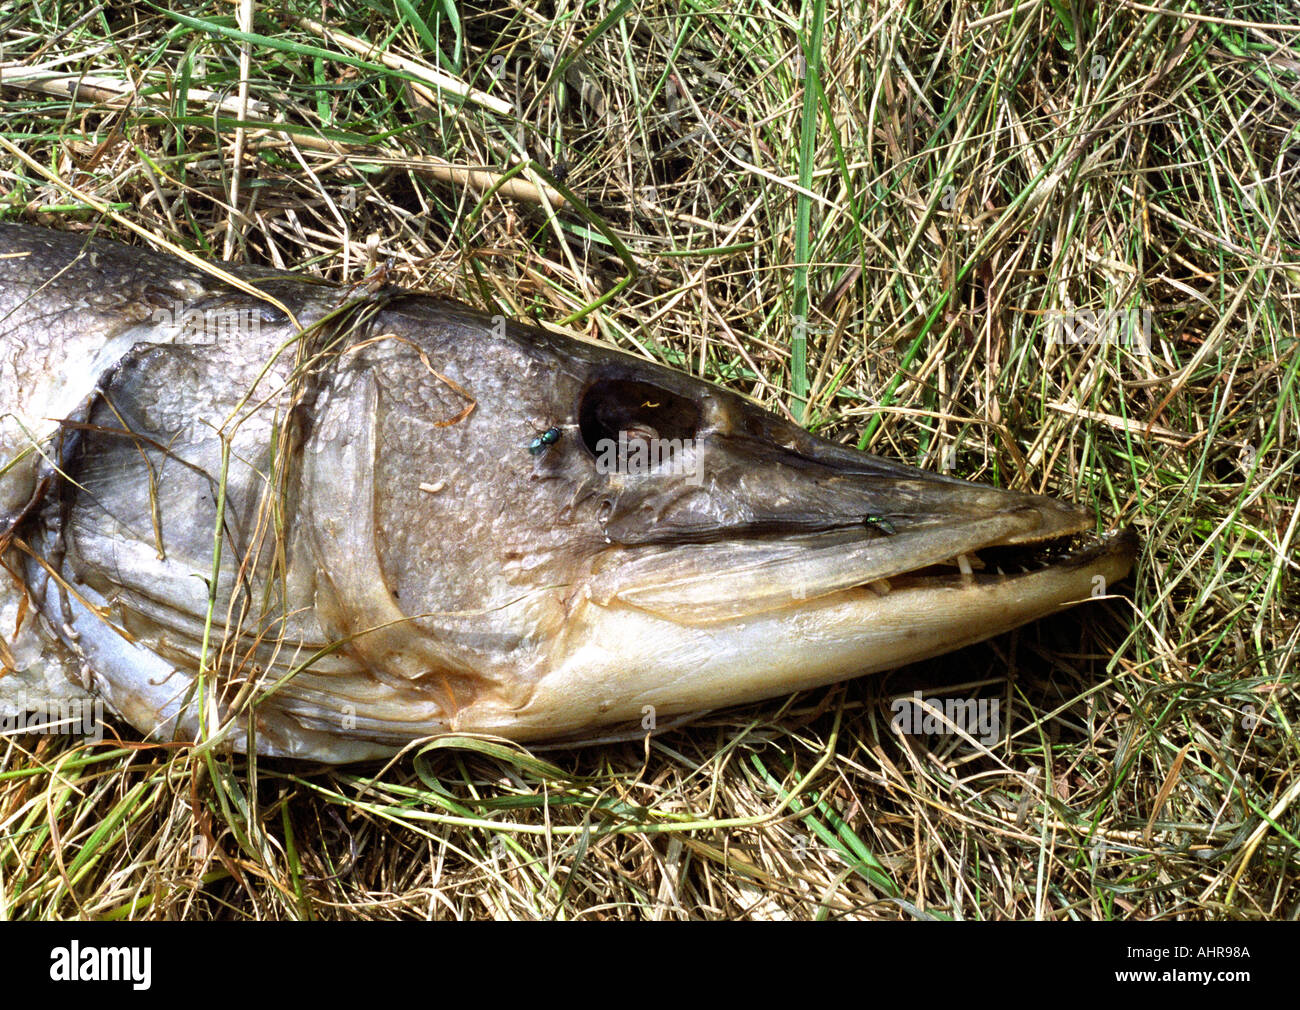 Freshwater fish england - Large Dead Dried Out Pike Fish On Riverbank In England